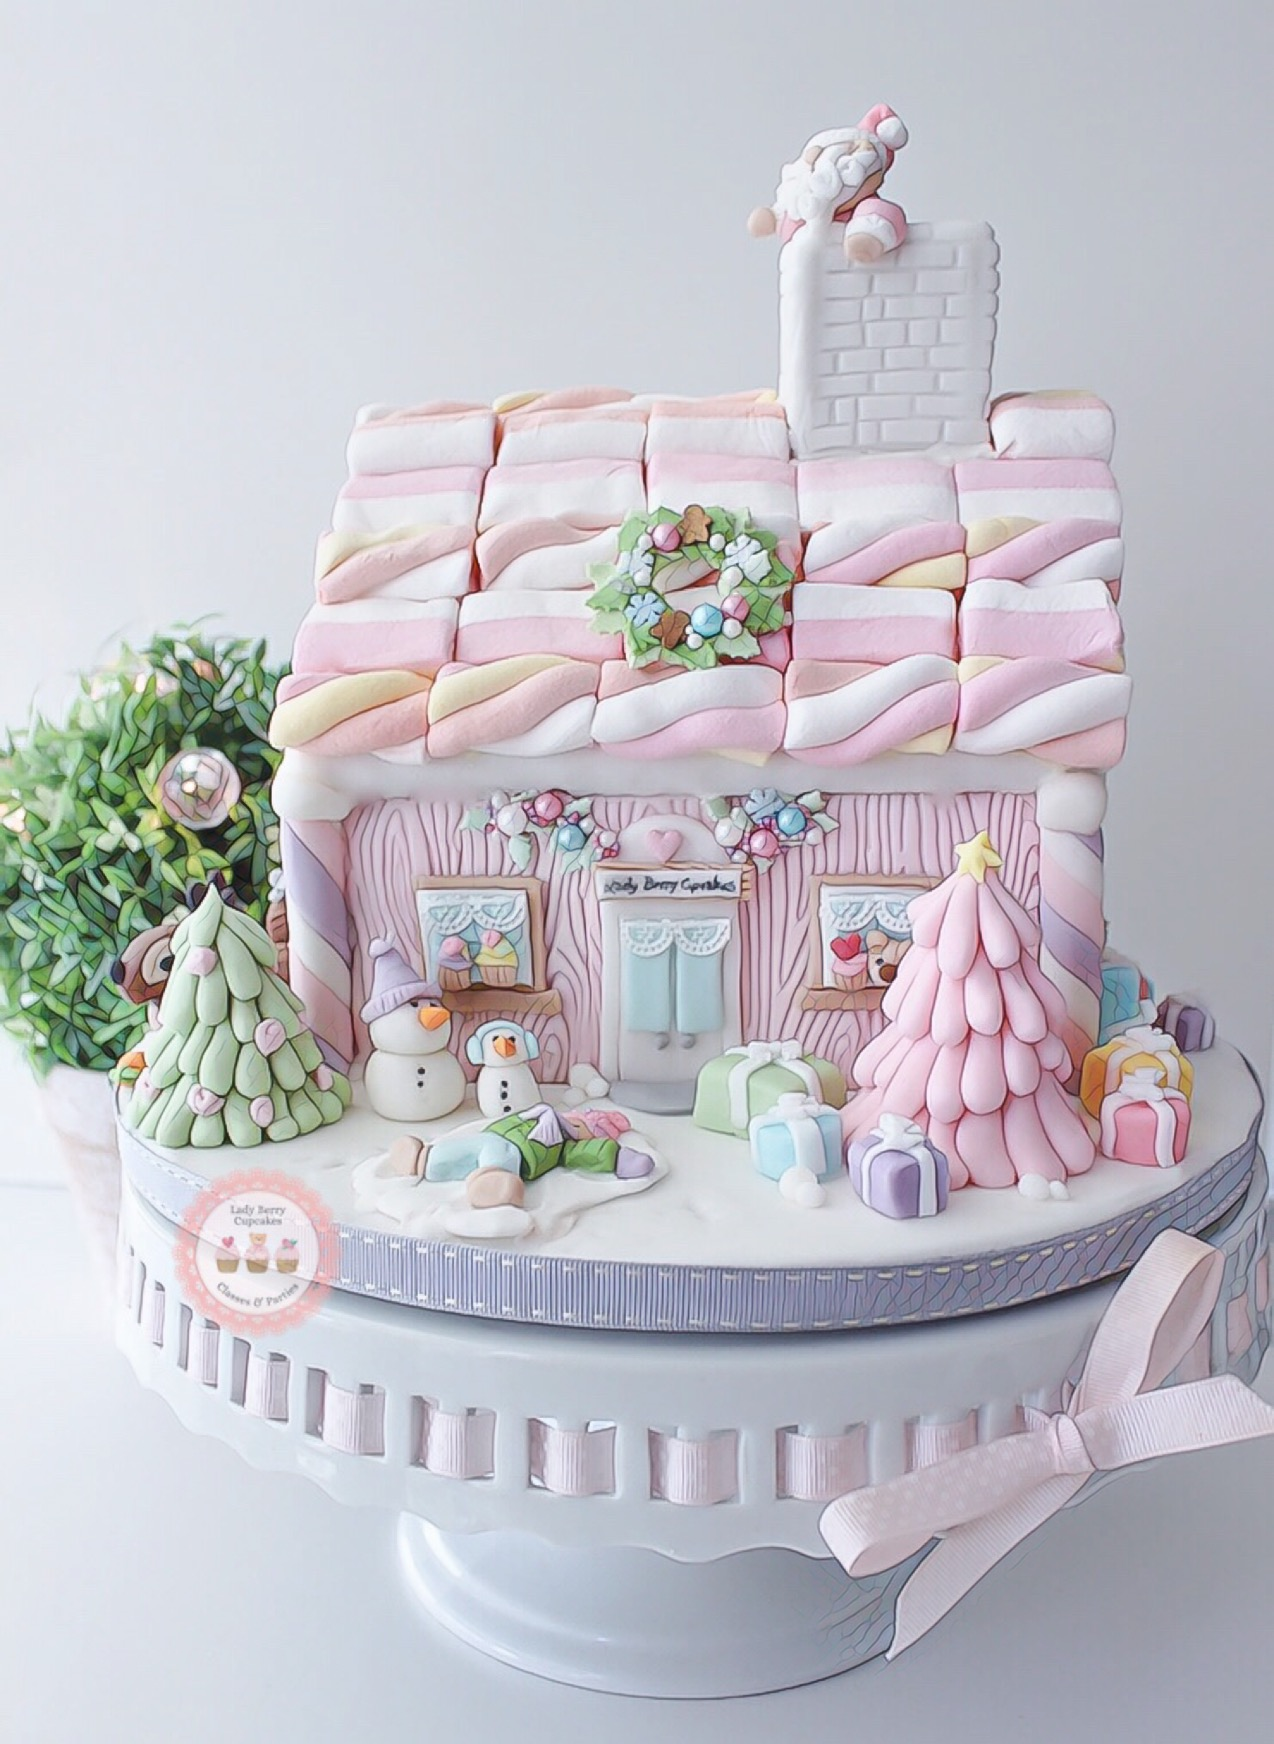 Pastel gingerbread house